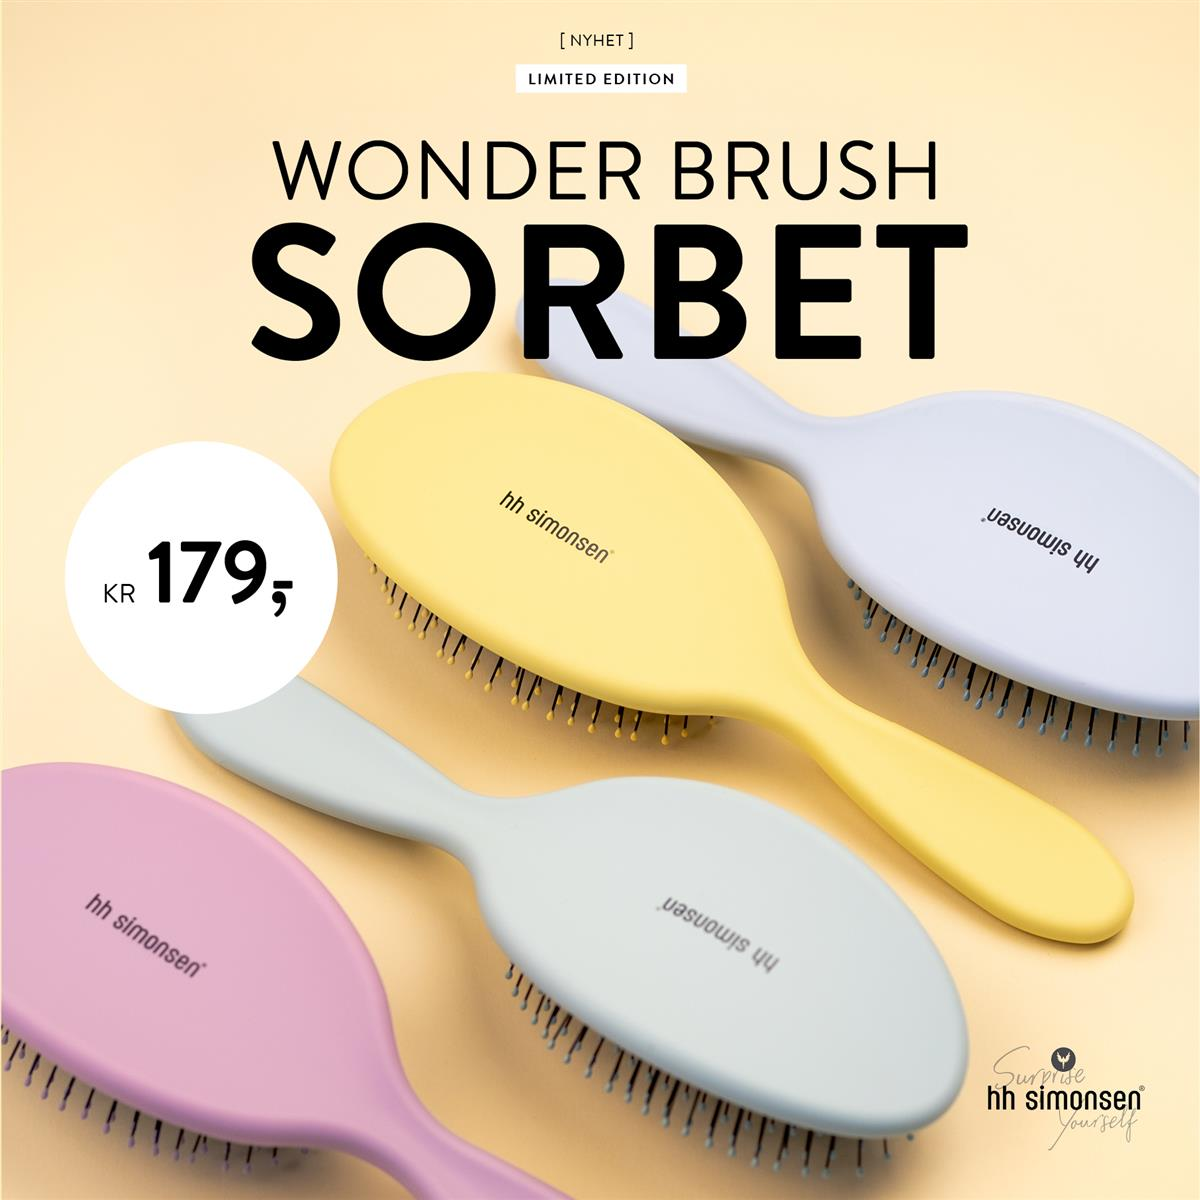 HH SIMONSEN - WONDER BRUSH SORBET - NYHET APRIL 2020